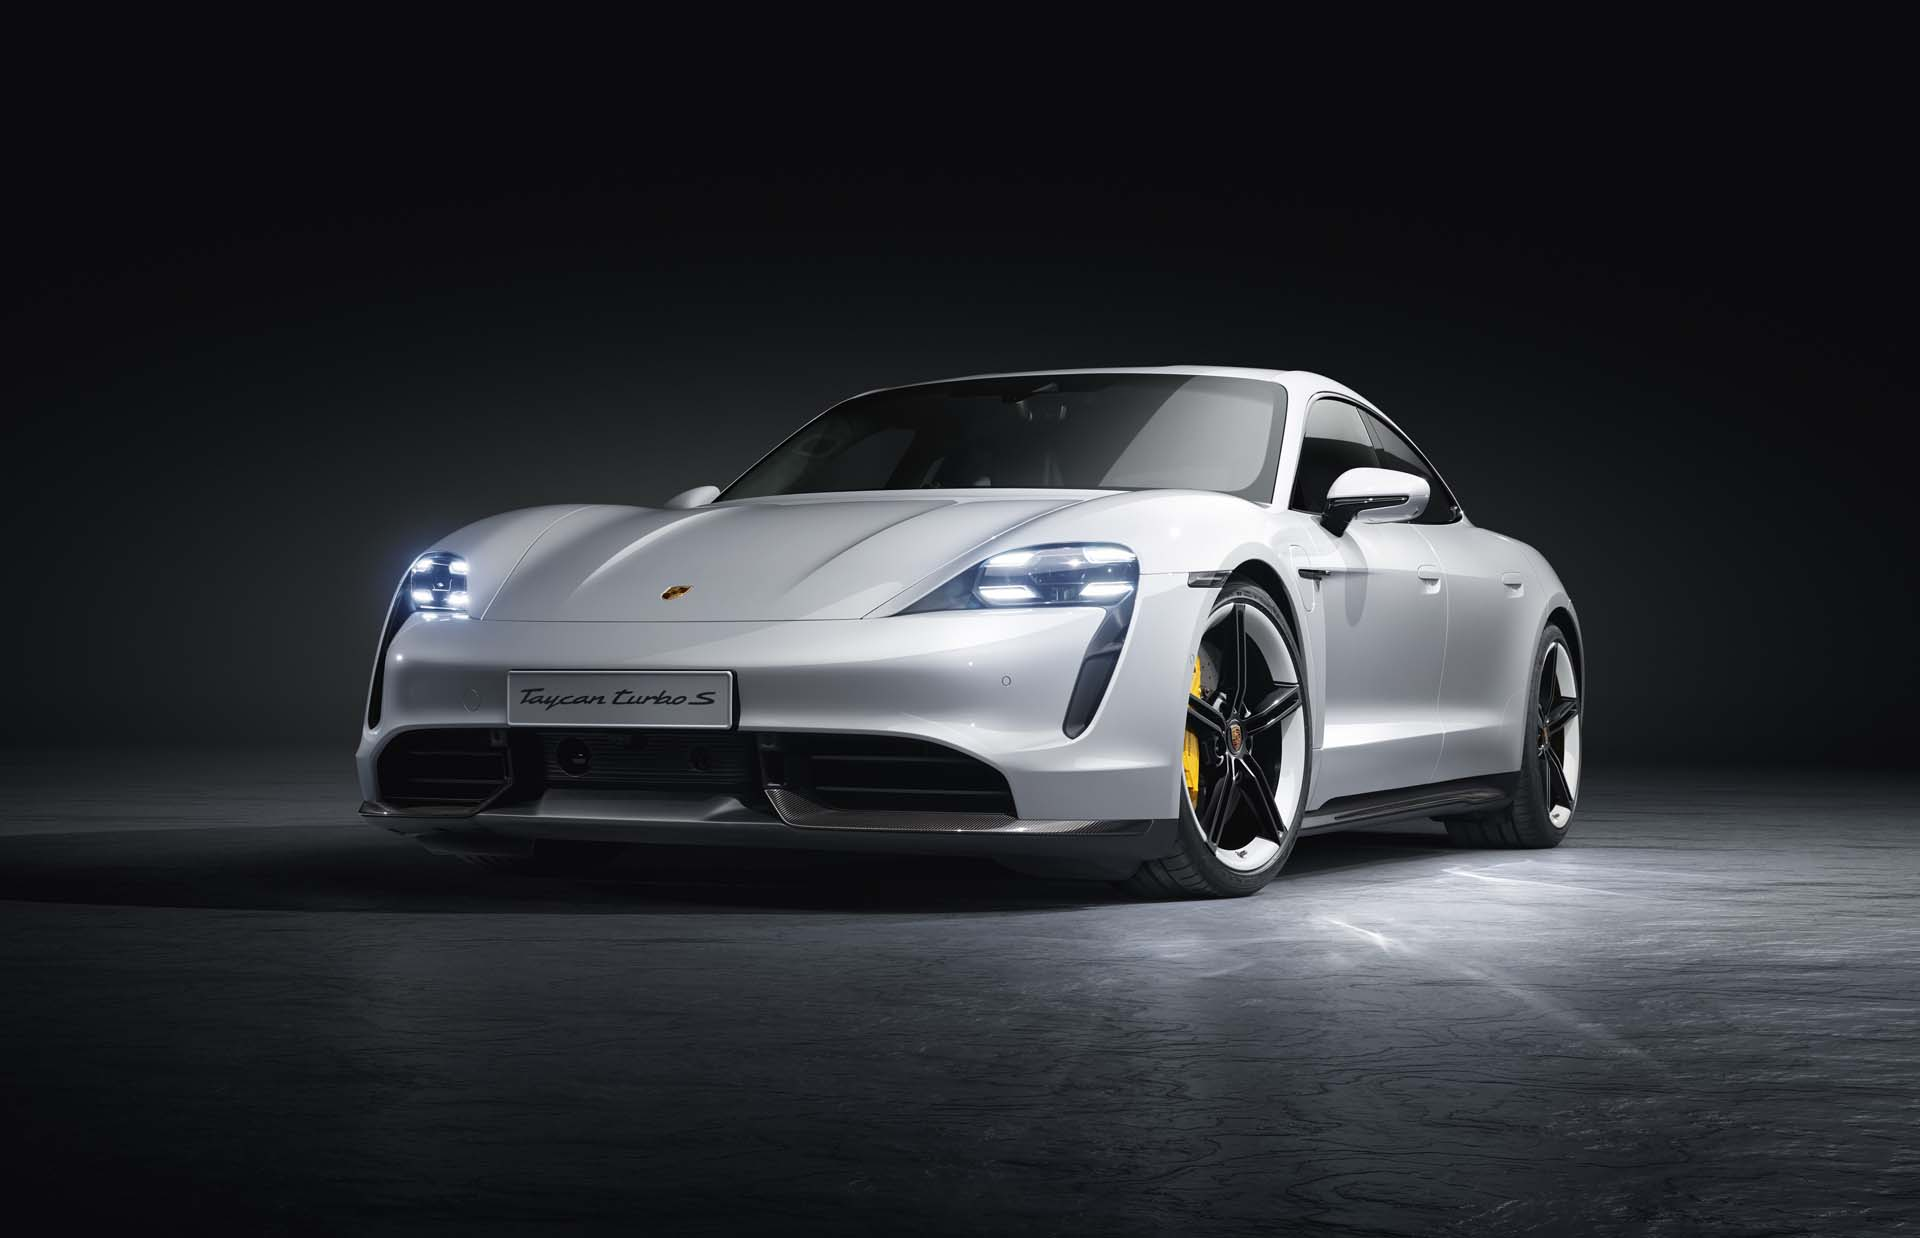 2020 Porsche Taycan Preview Fast Electric Expensive